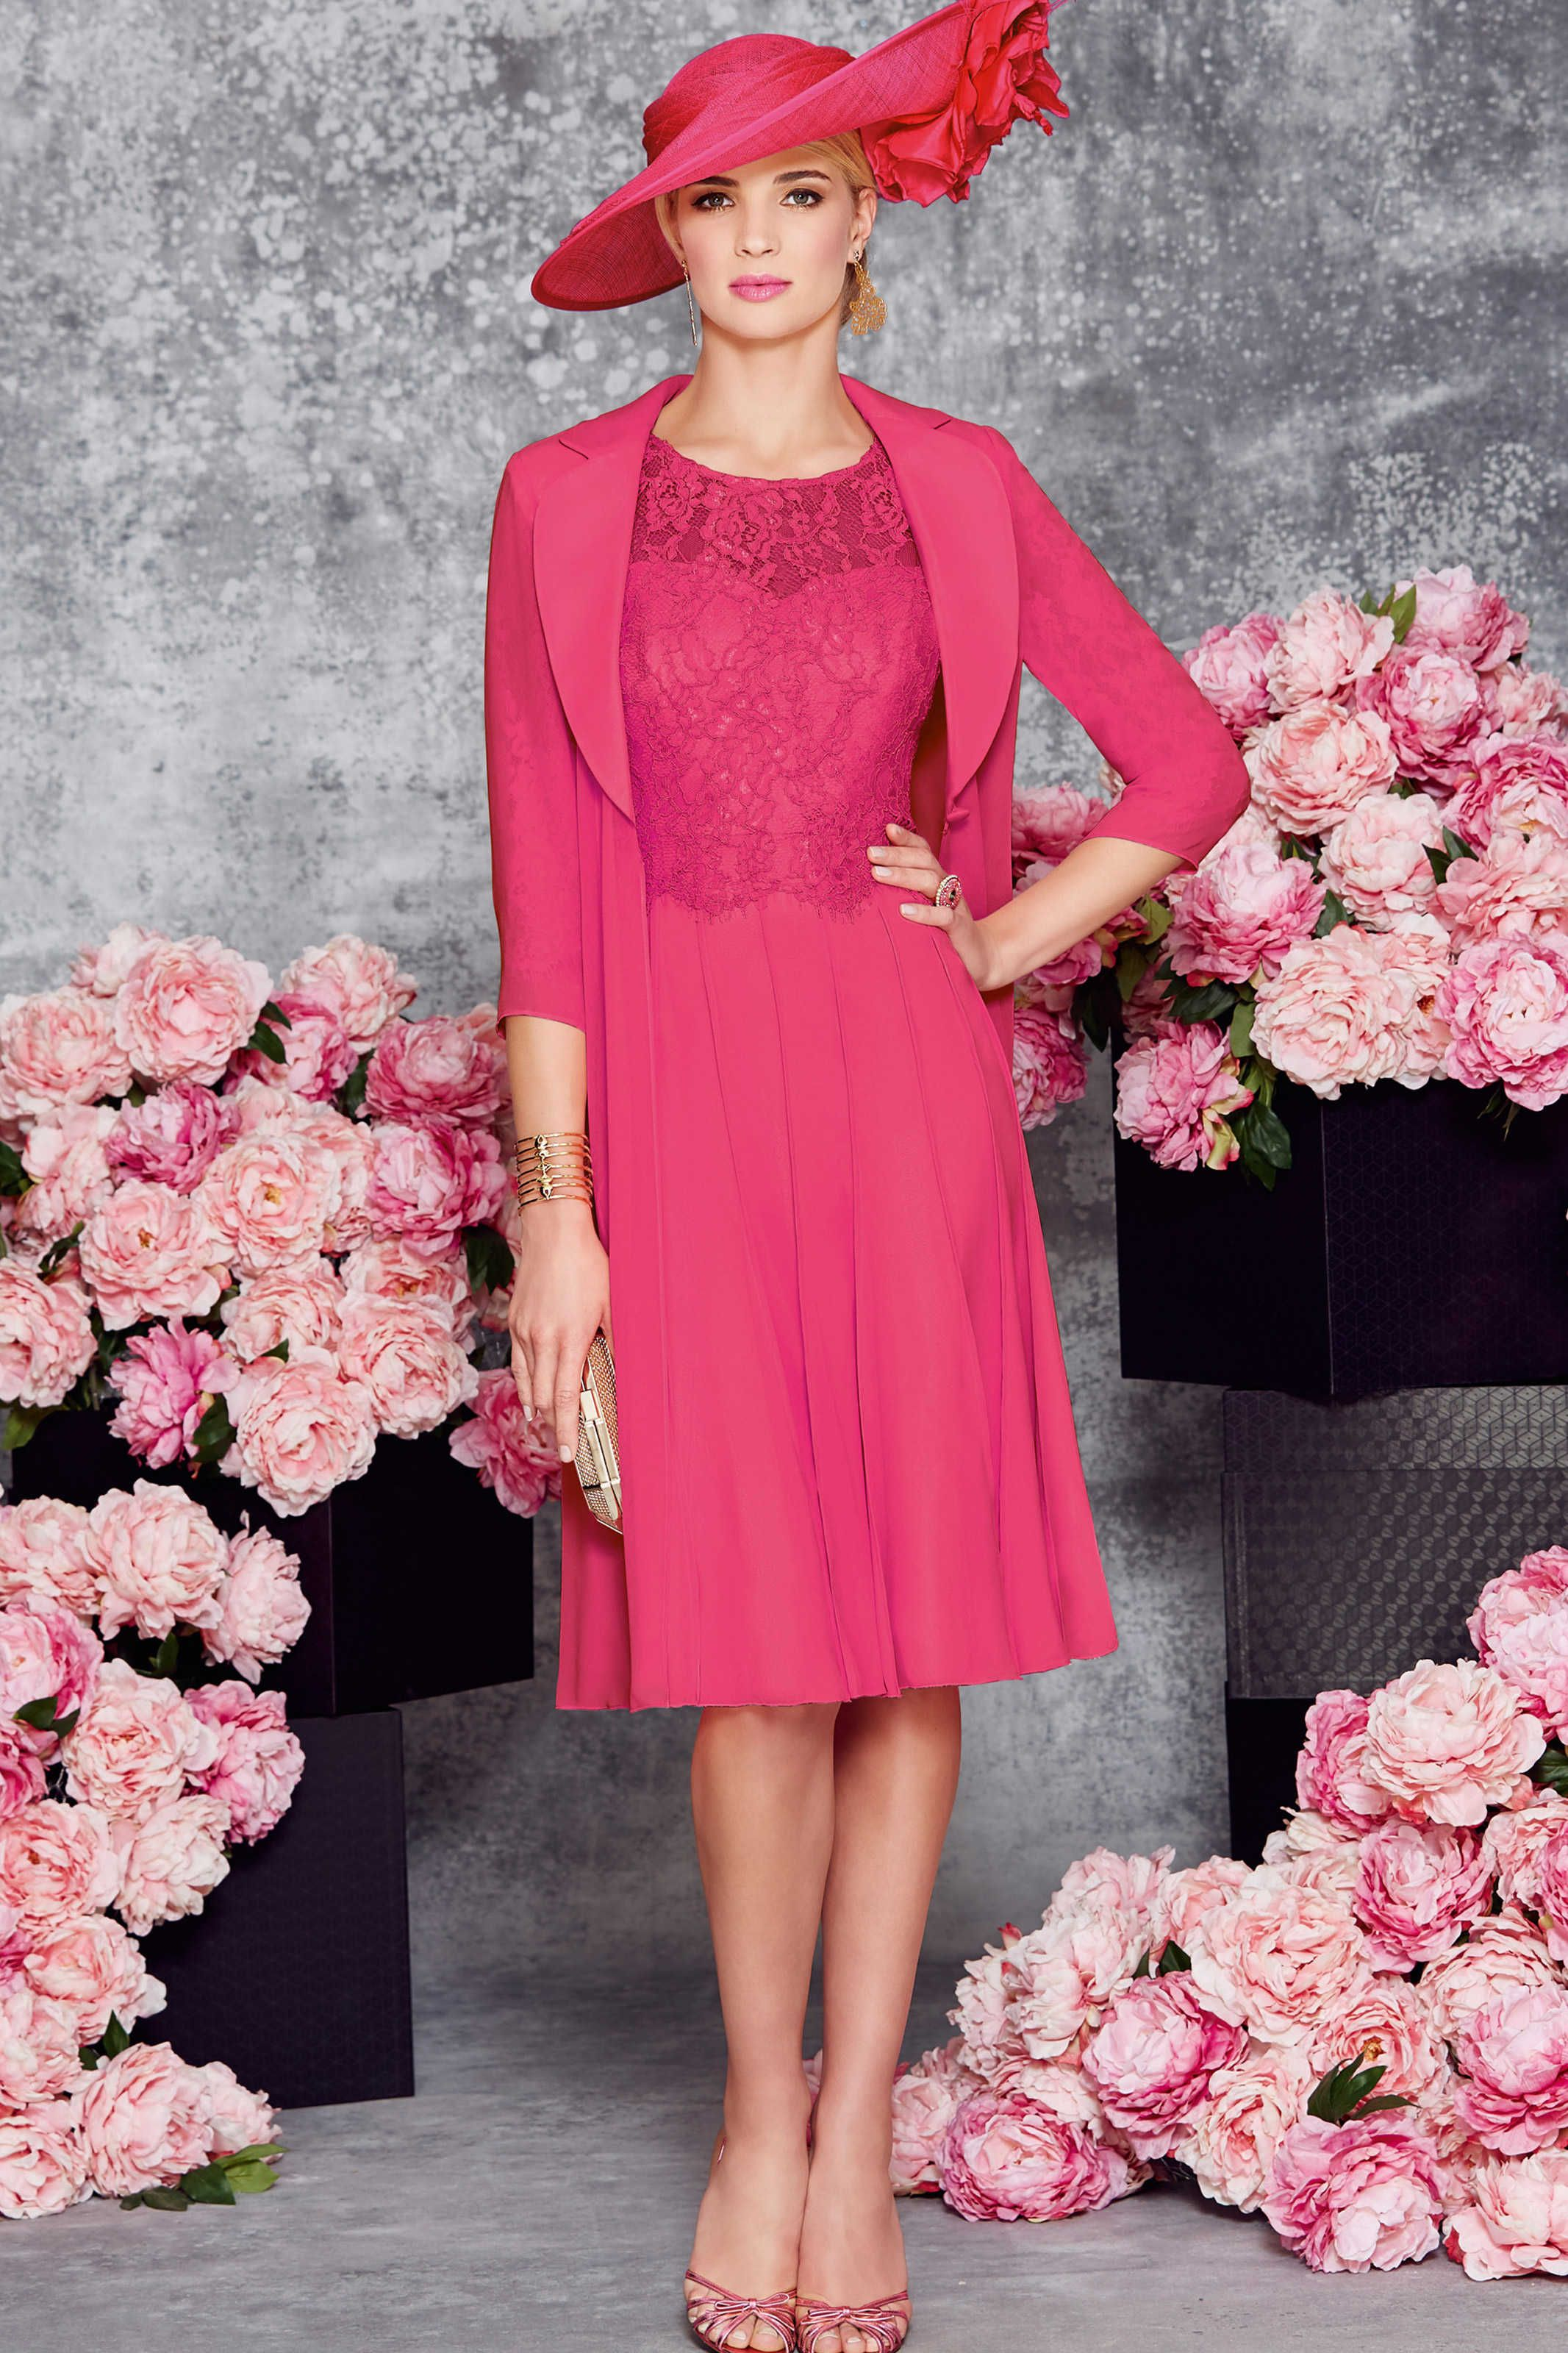 Short floaty dress with lace design and matching coat 008971